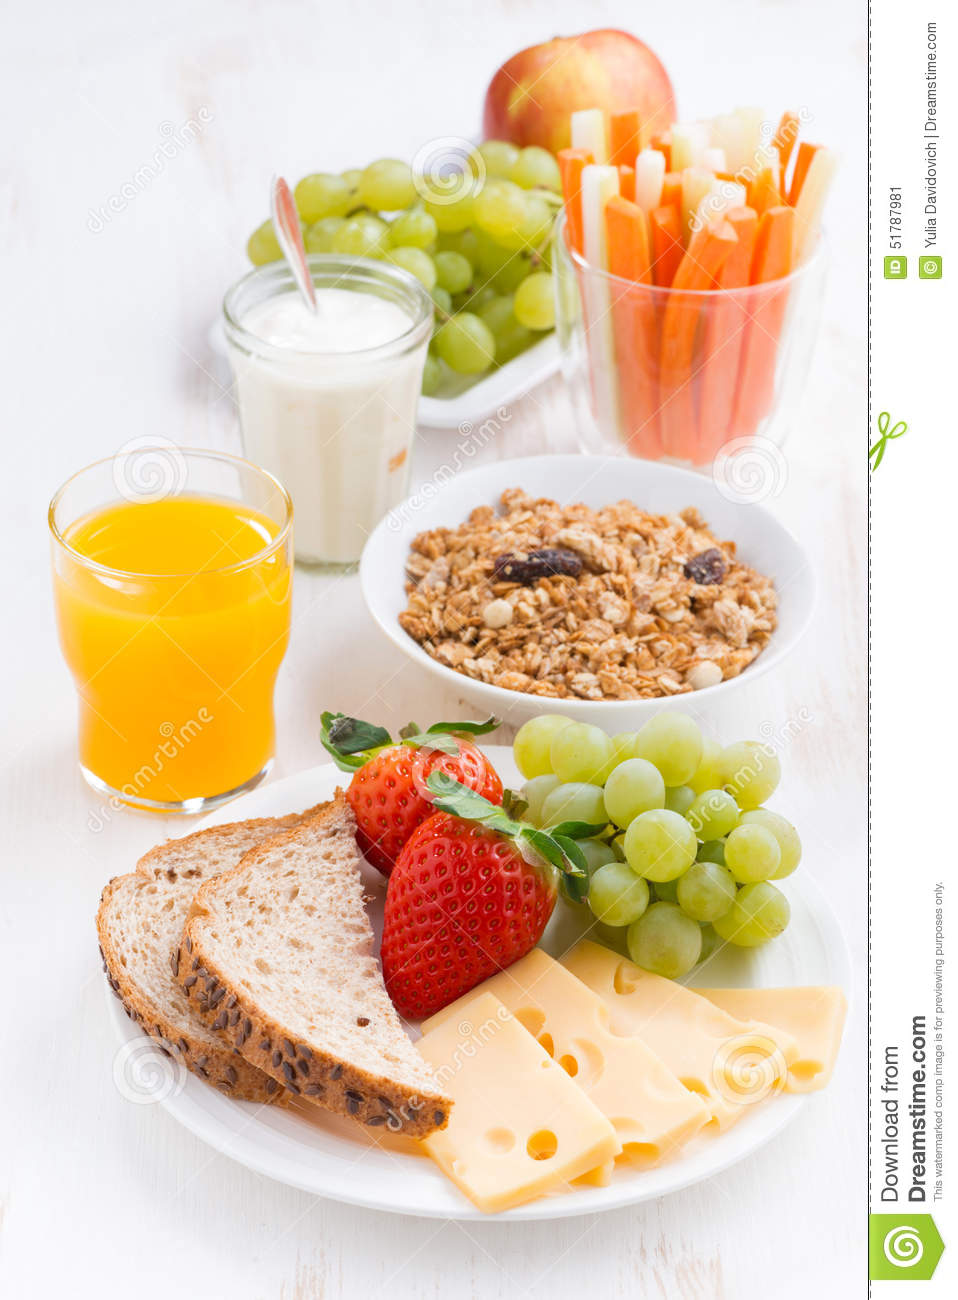 fruits that are vegetables is fruit a healthy breakfast